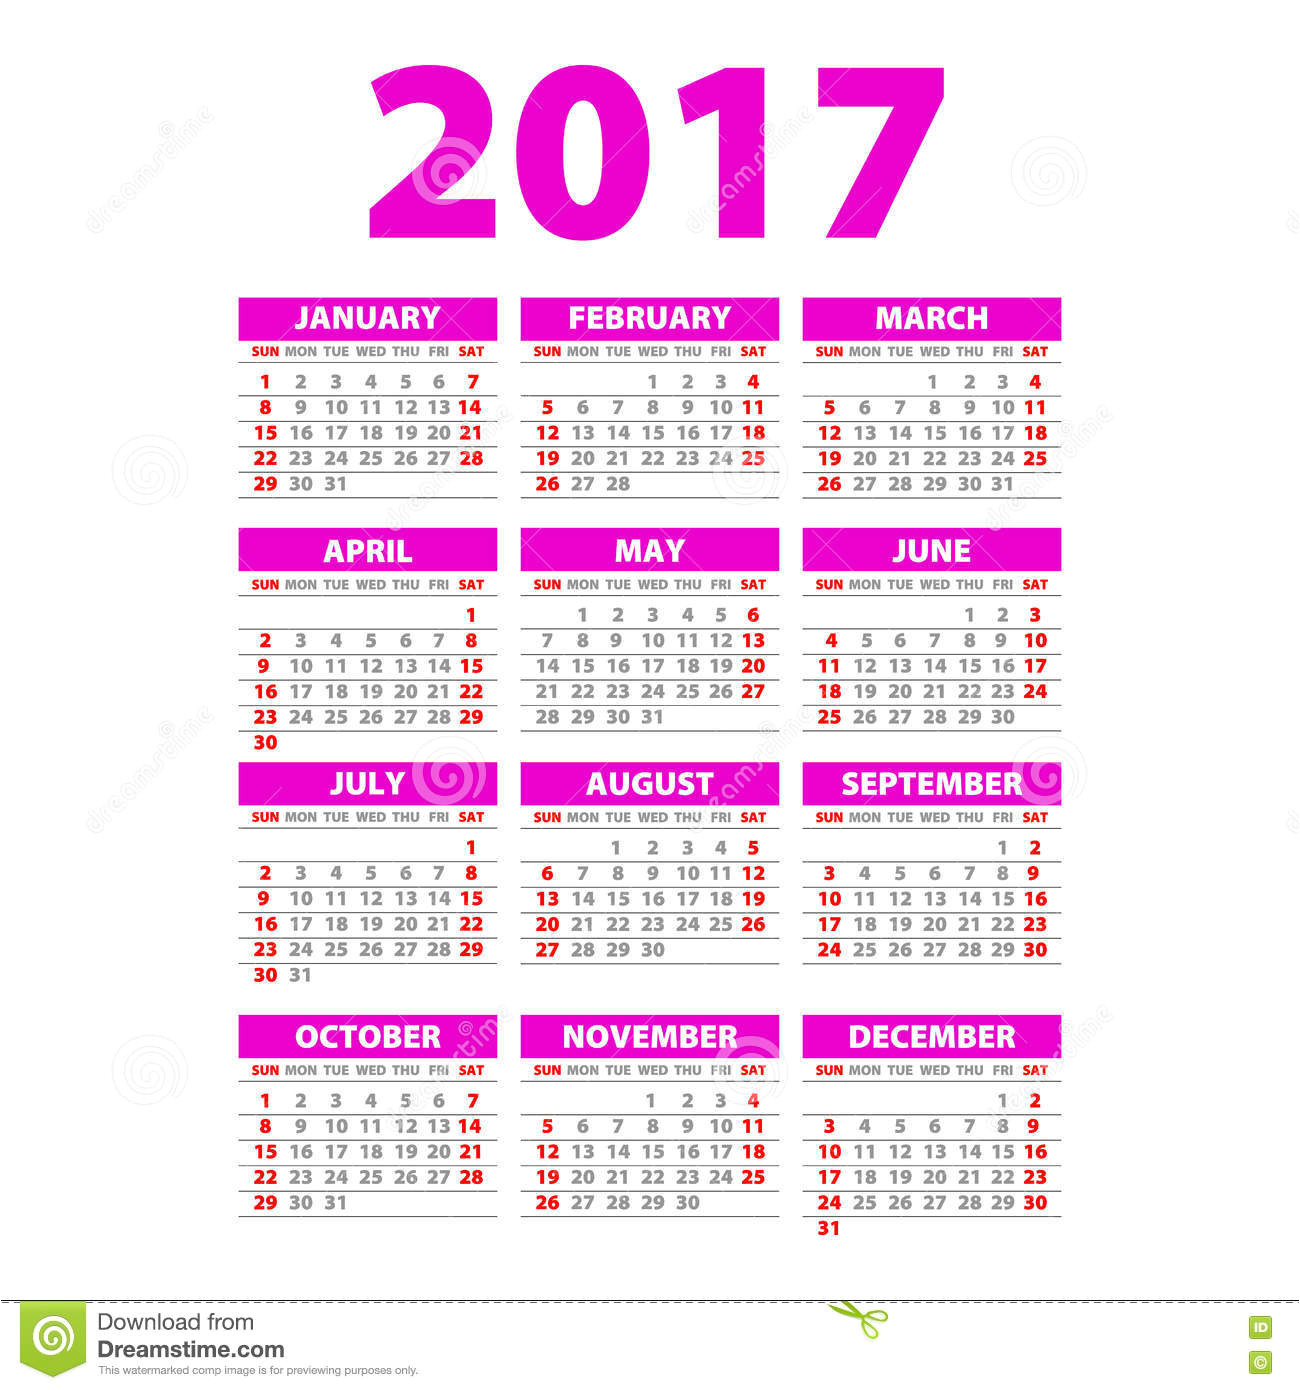 Whole Year Calendar Template Year Wall Planner Plan Out Your whole Year with This 2017